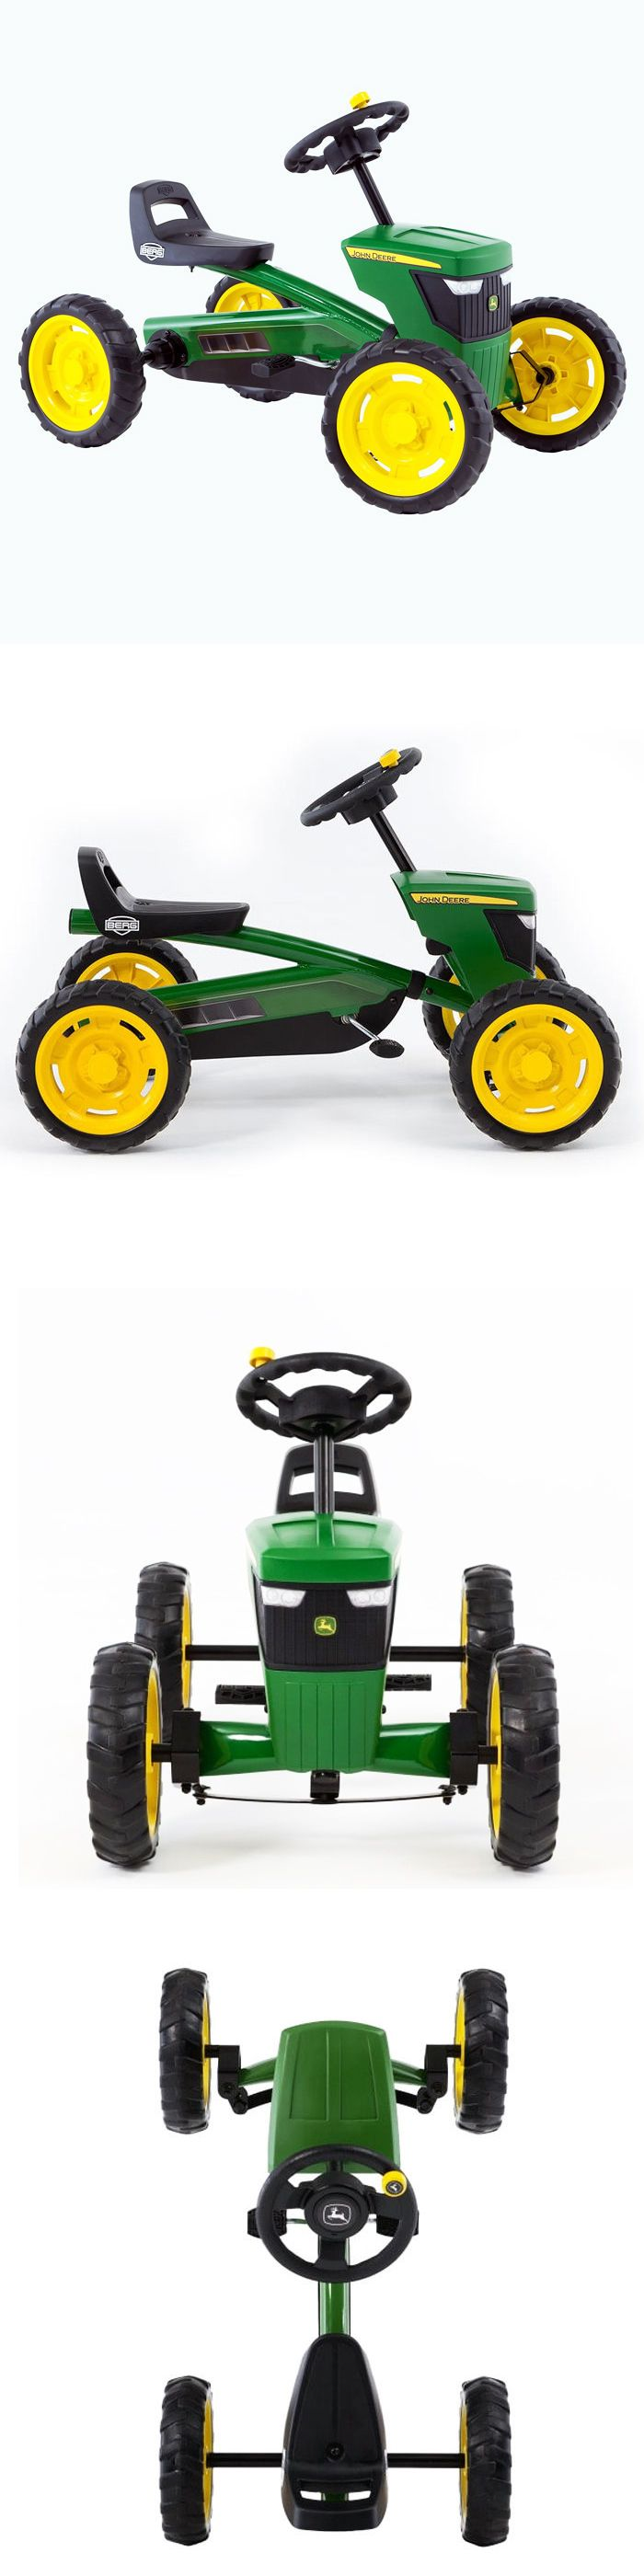 Complete Go-Karts and Frames 64656: Buzzy John Deere Pedal Go Kart -> BUY IT NOW ONLY: $185 on eBay!